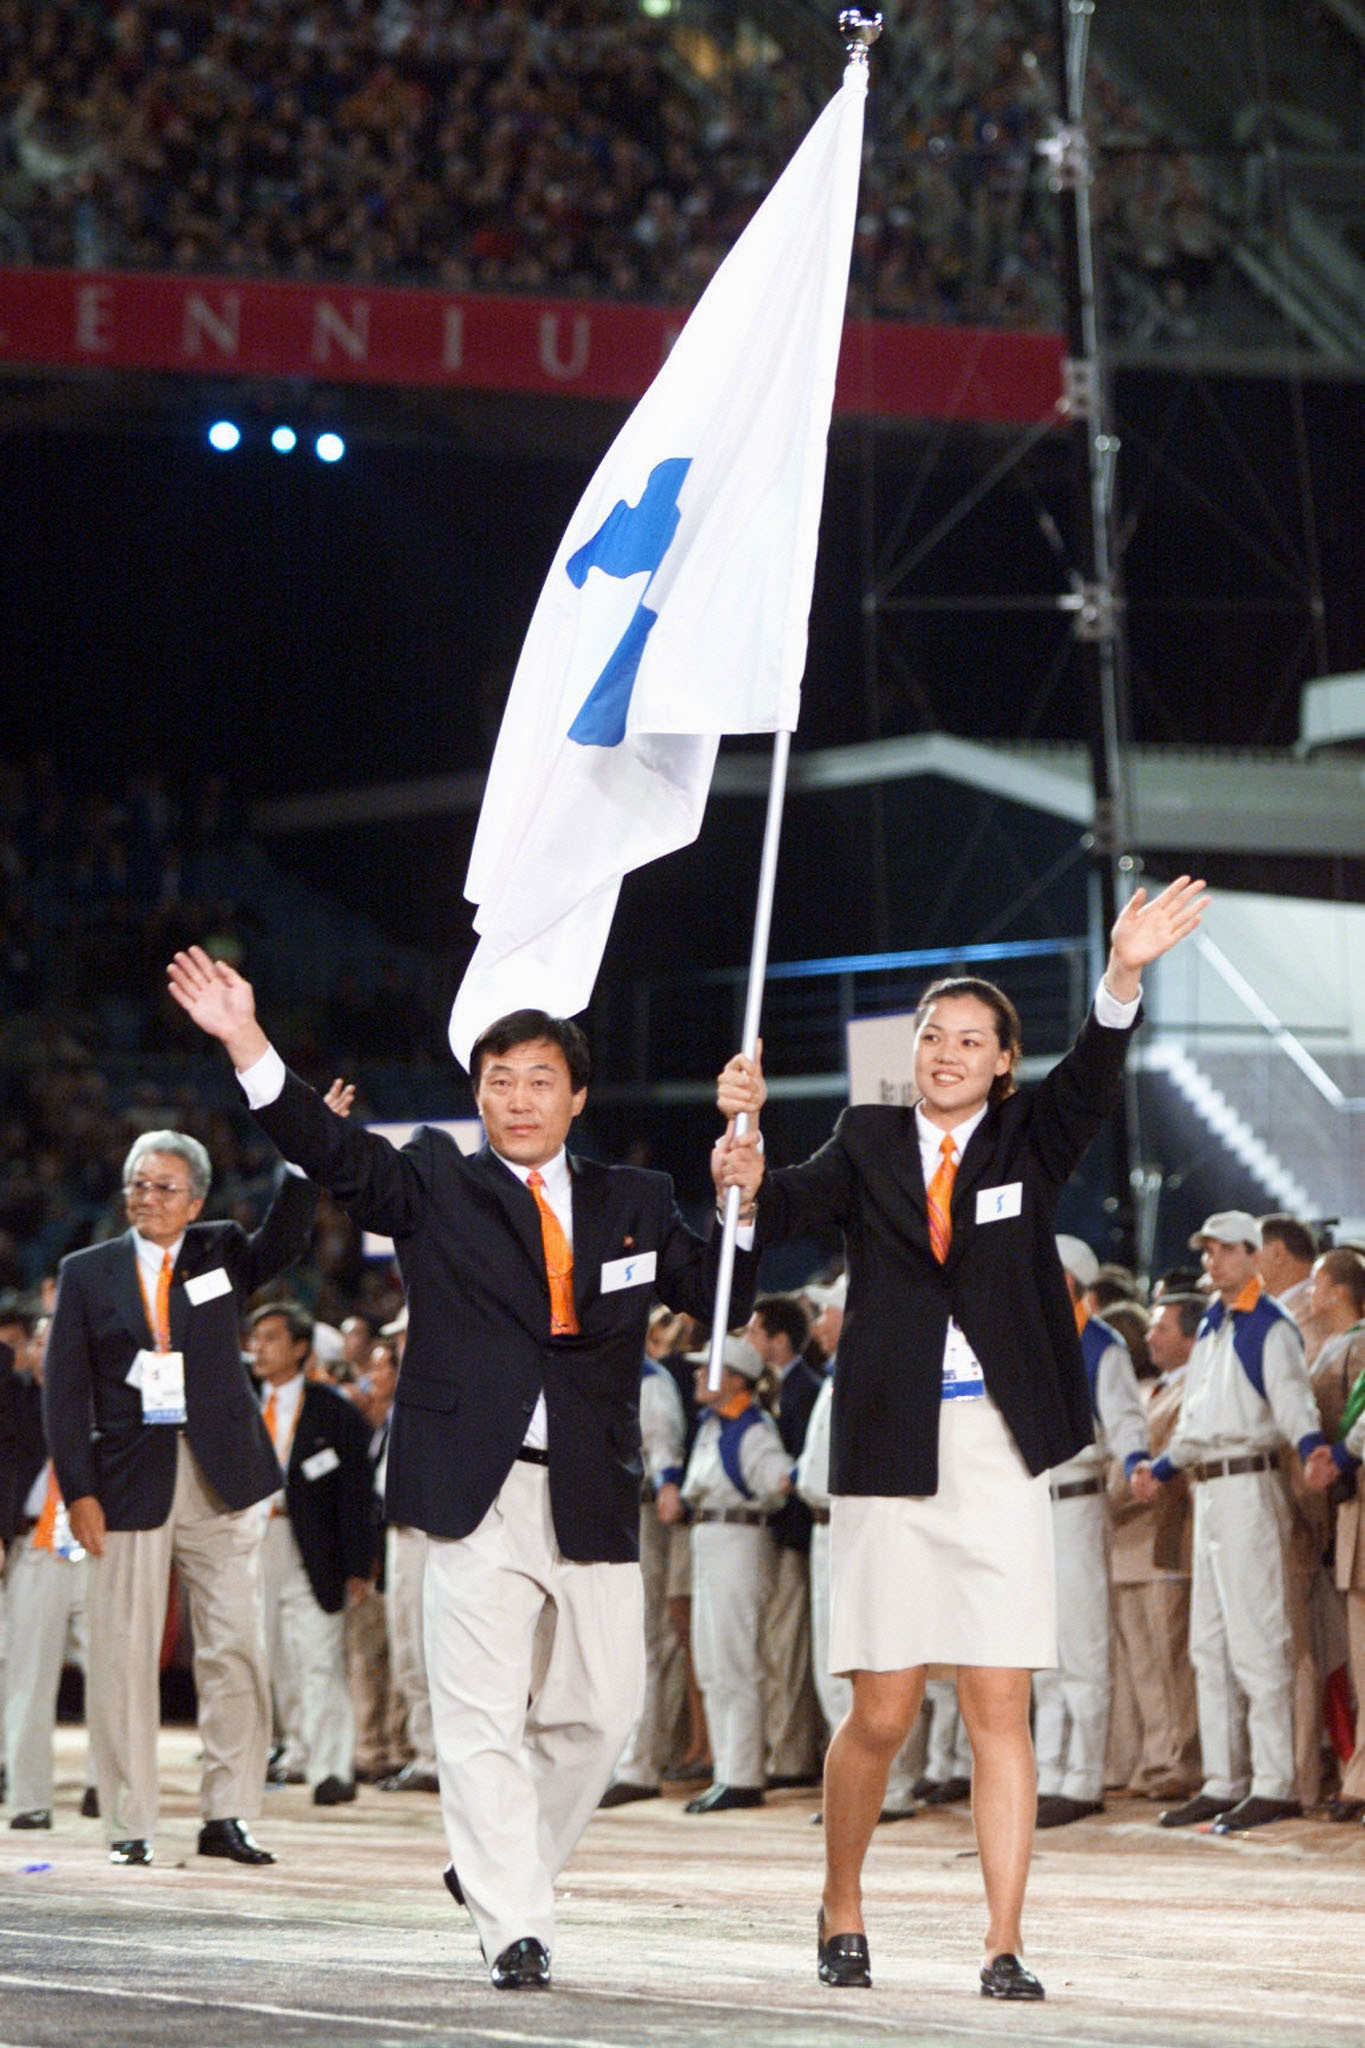 North and South Korea are set to march together at the Opening Ceremony of the Pyeongchang 2018 Winter Olympics, just as they did at the curtain raiser for the Sydney 2000 Games ©Getty Images